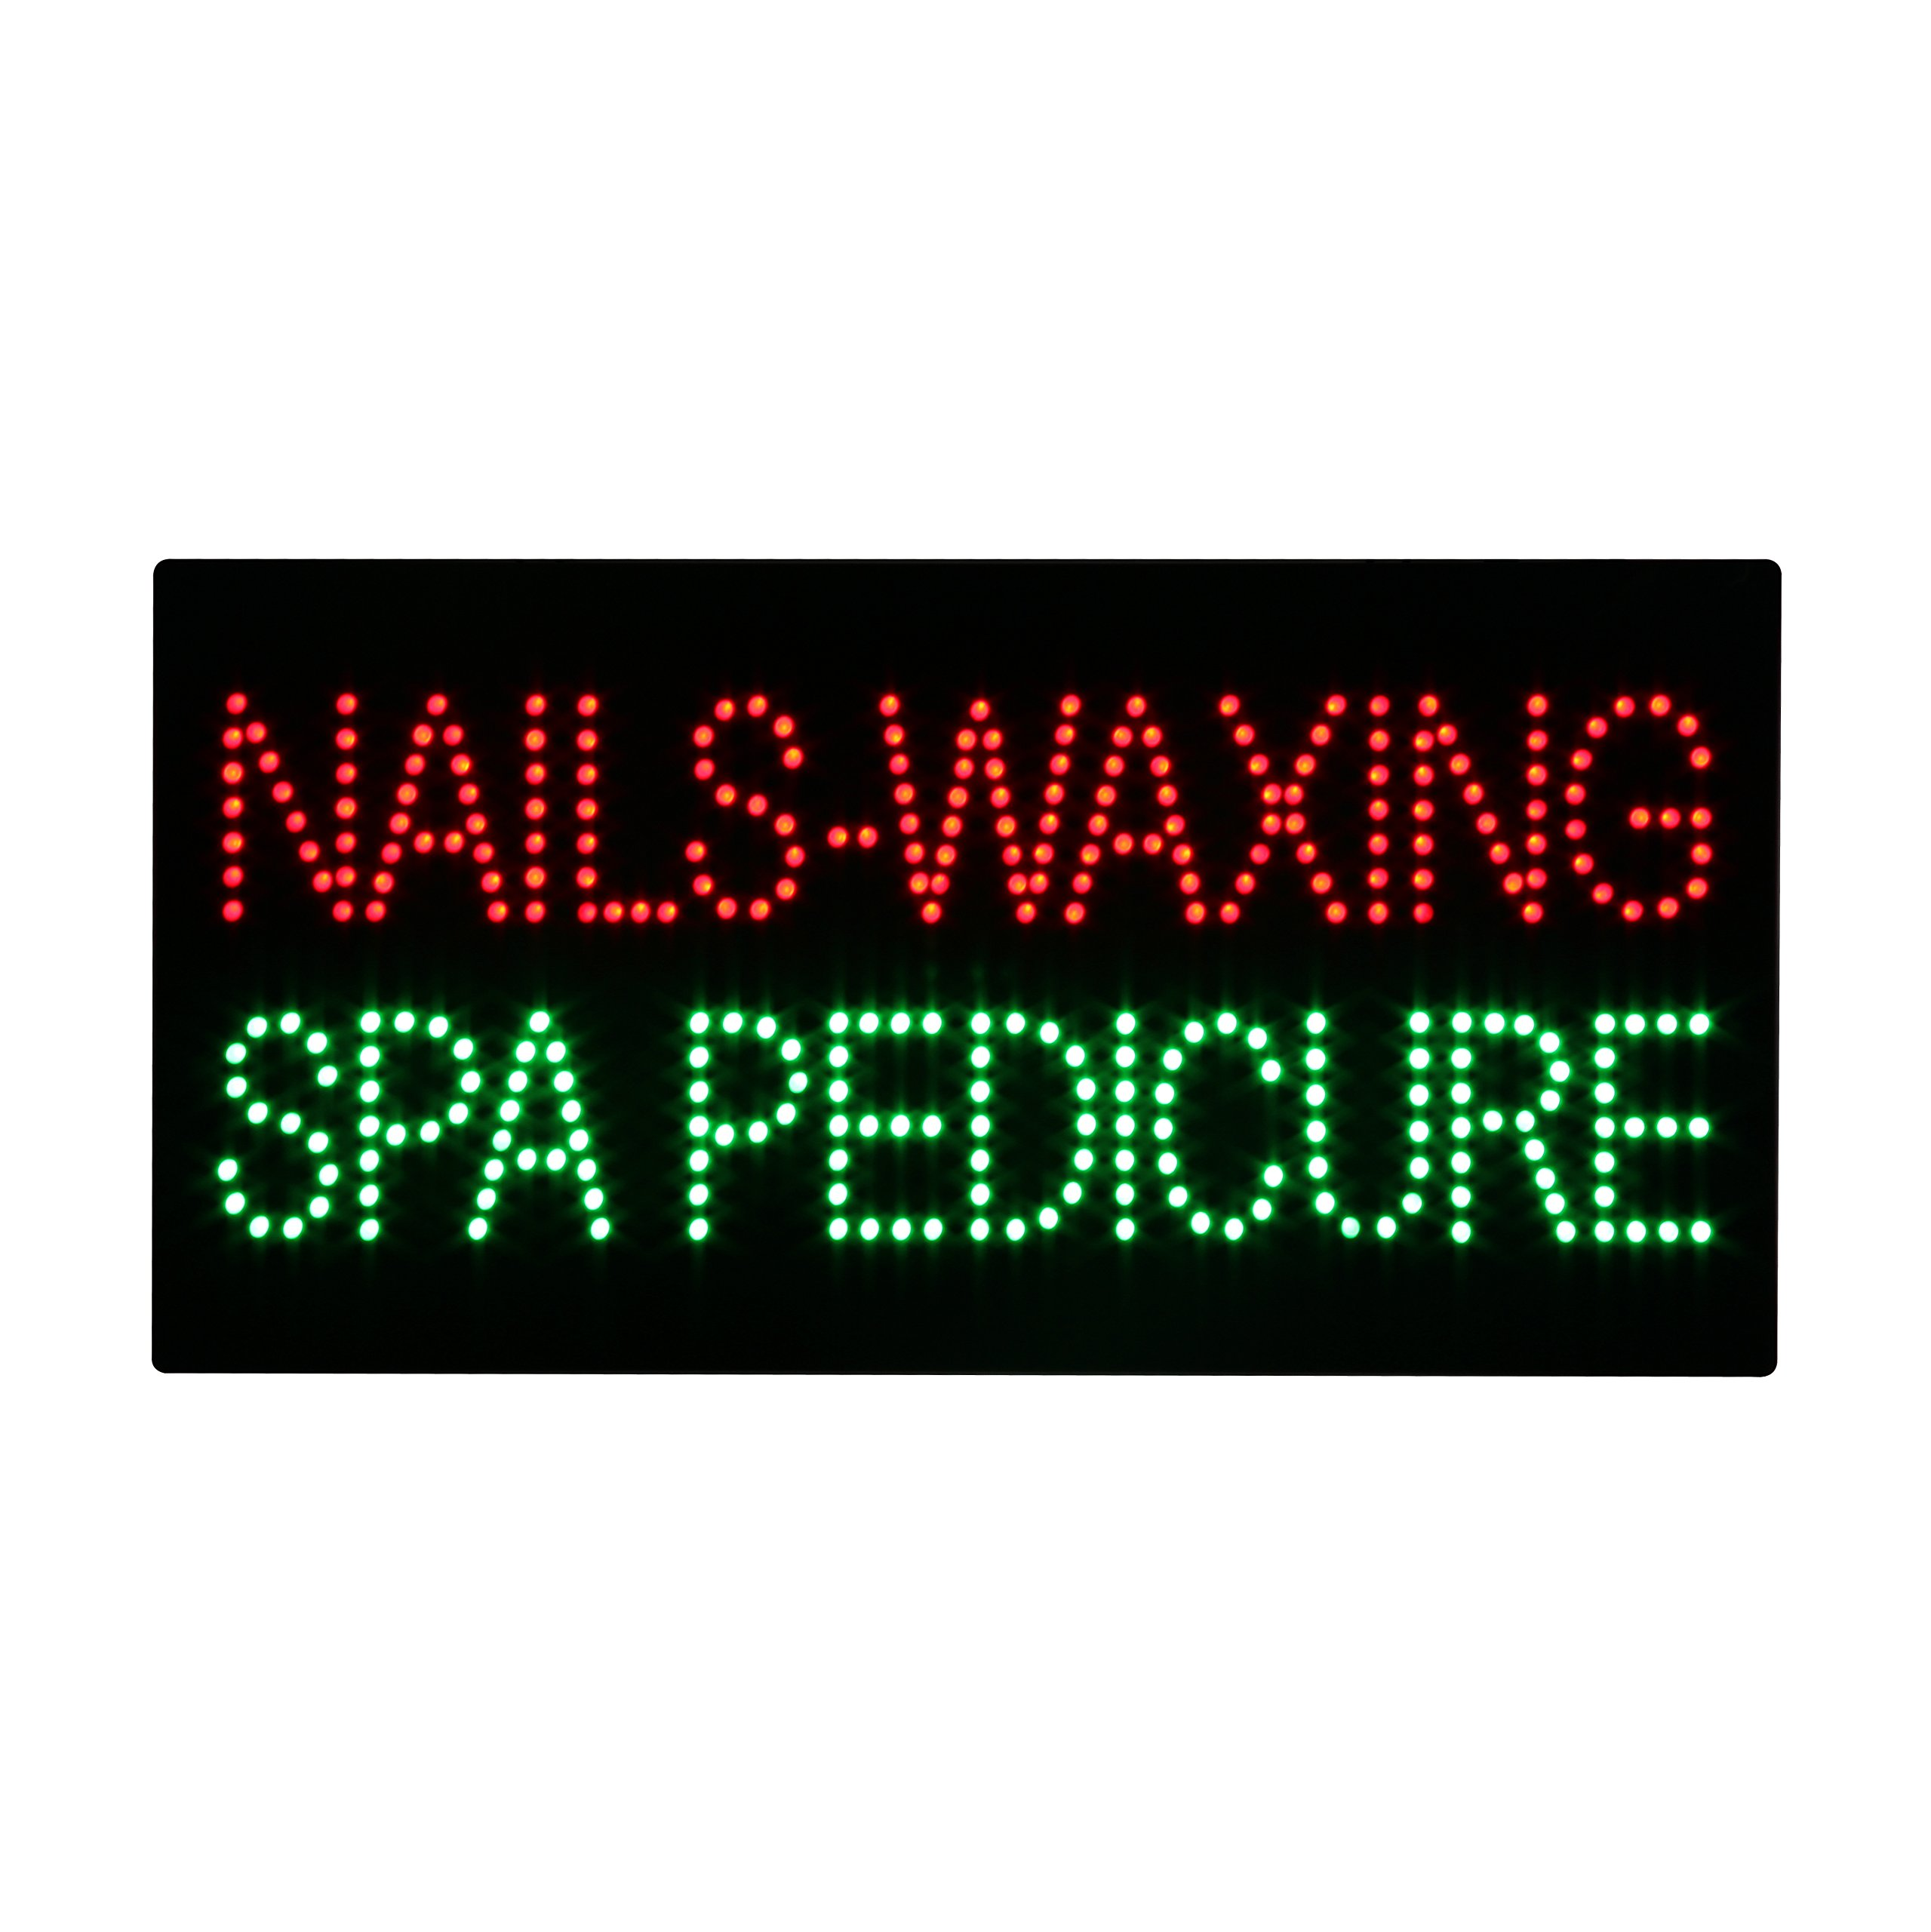 LED Nails Waxing Spa Pedicure Open Light Sign Super Bright Electric Advertising Display Board for Message Business Shop Store Window Bedroom 24 x 12 inches by HIDLY